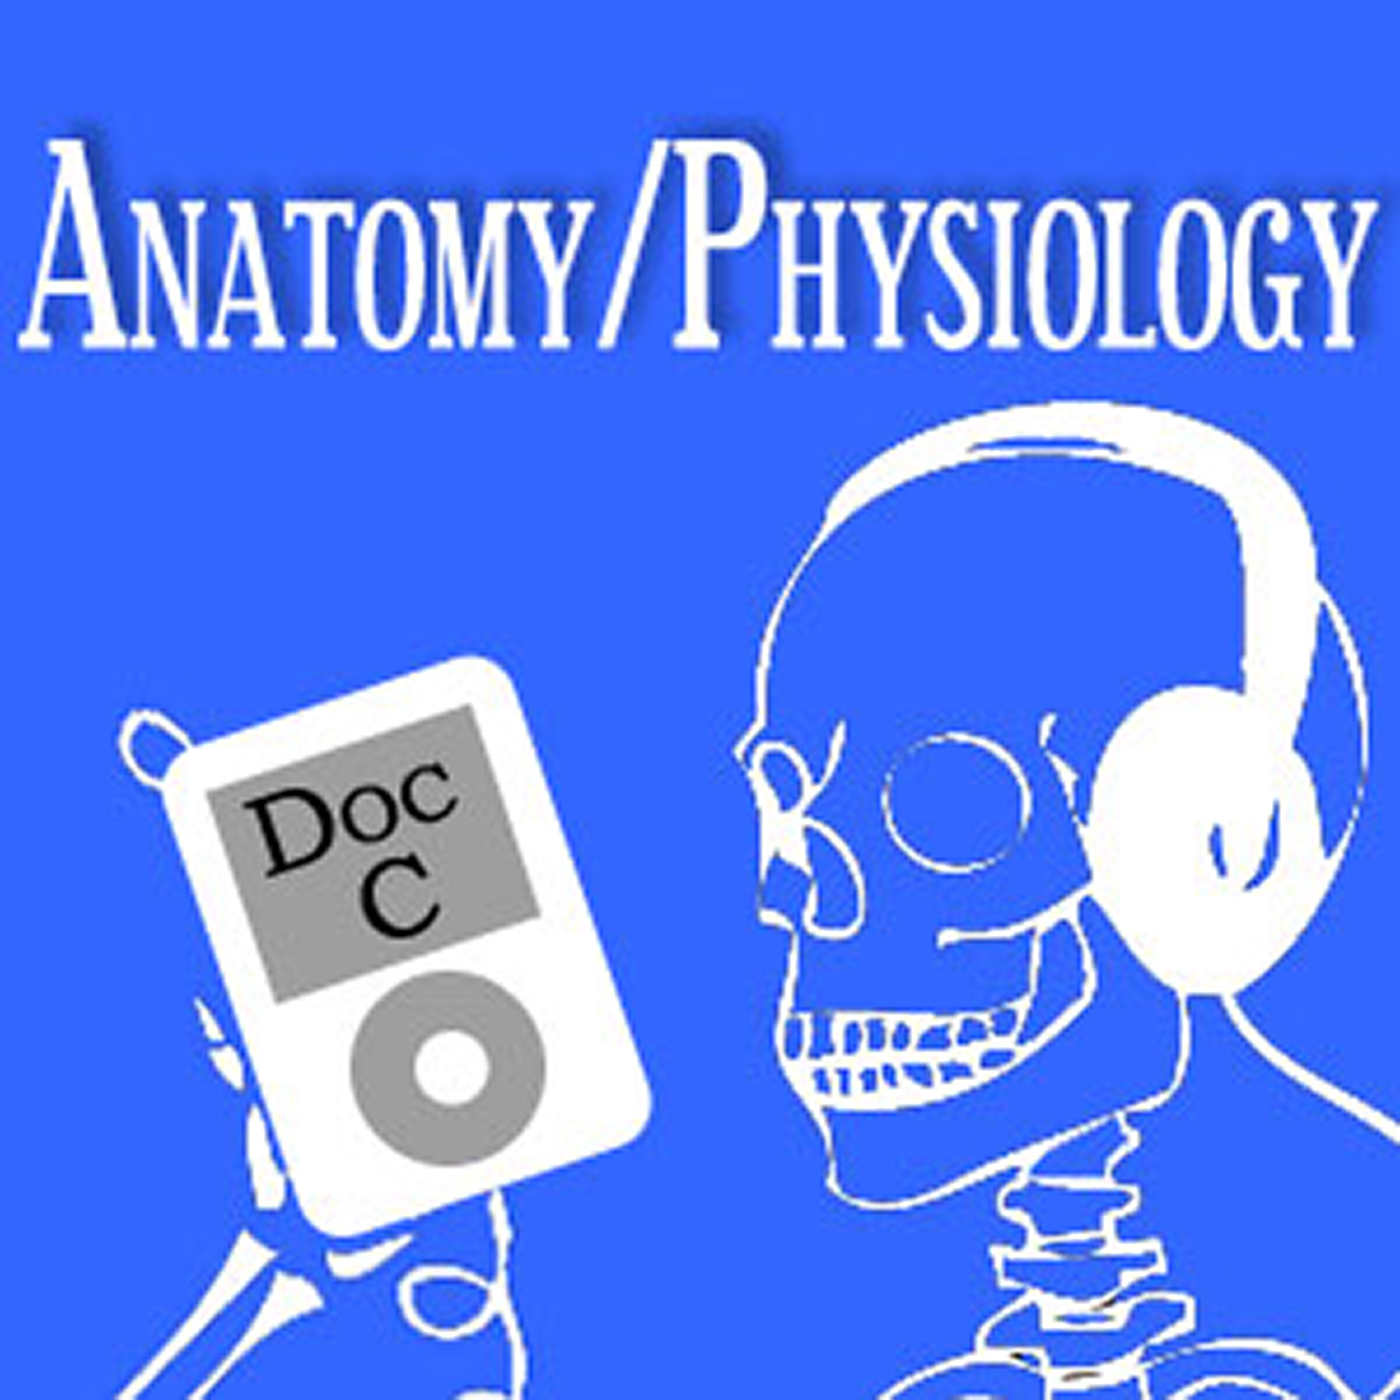 Biology 2110/2120: Anatomy and Physiology with Doc C